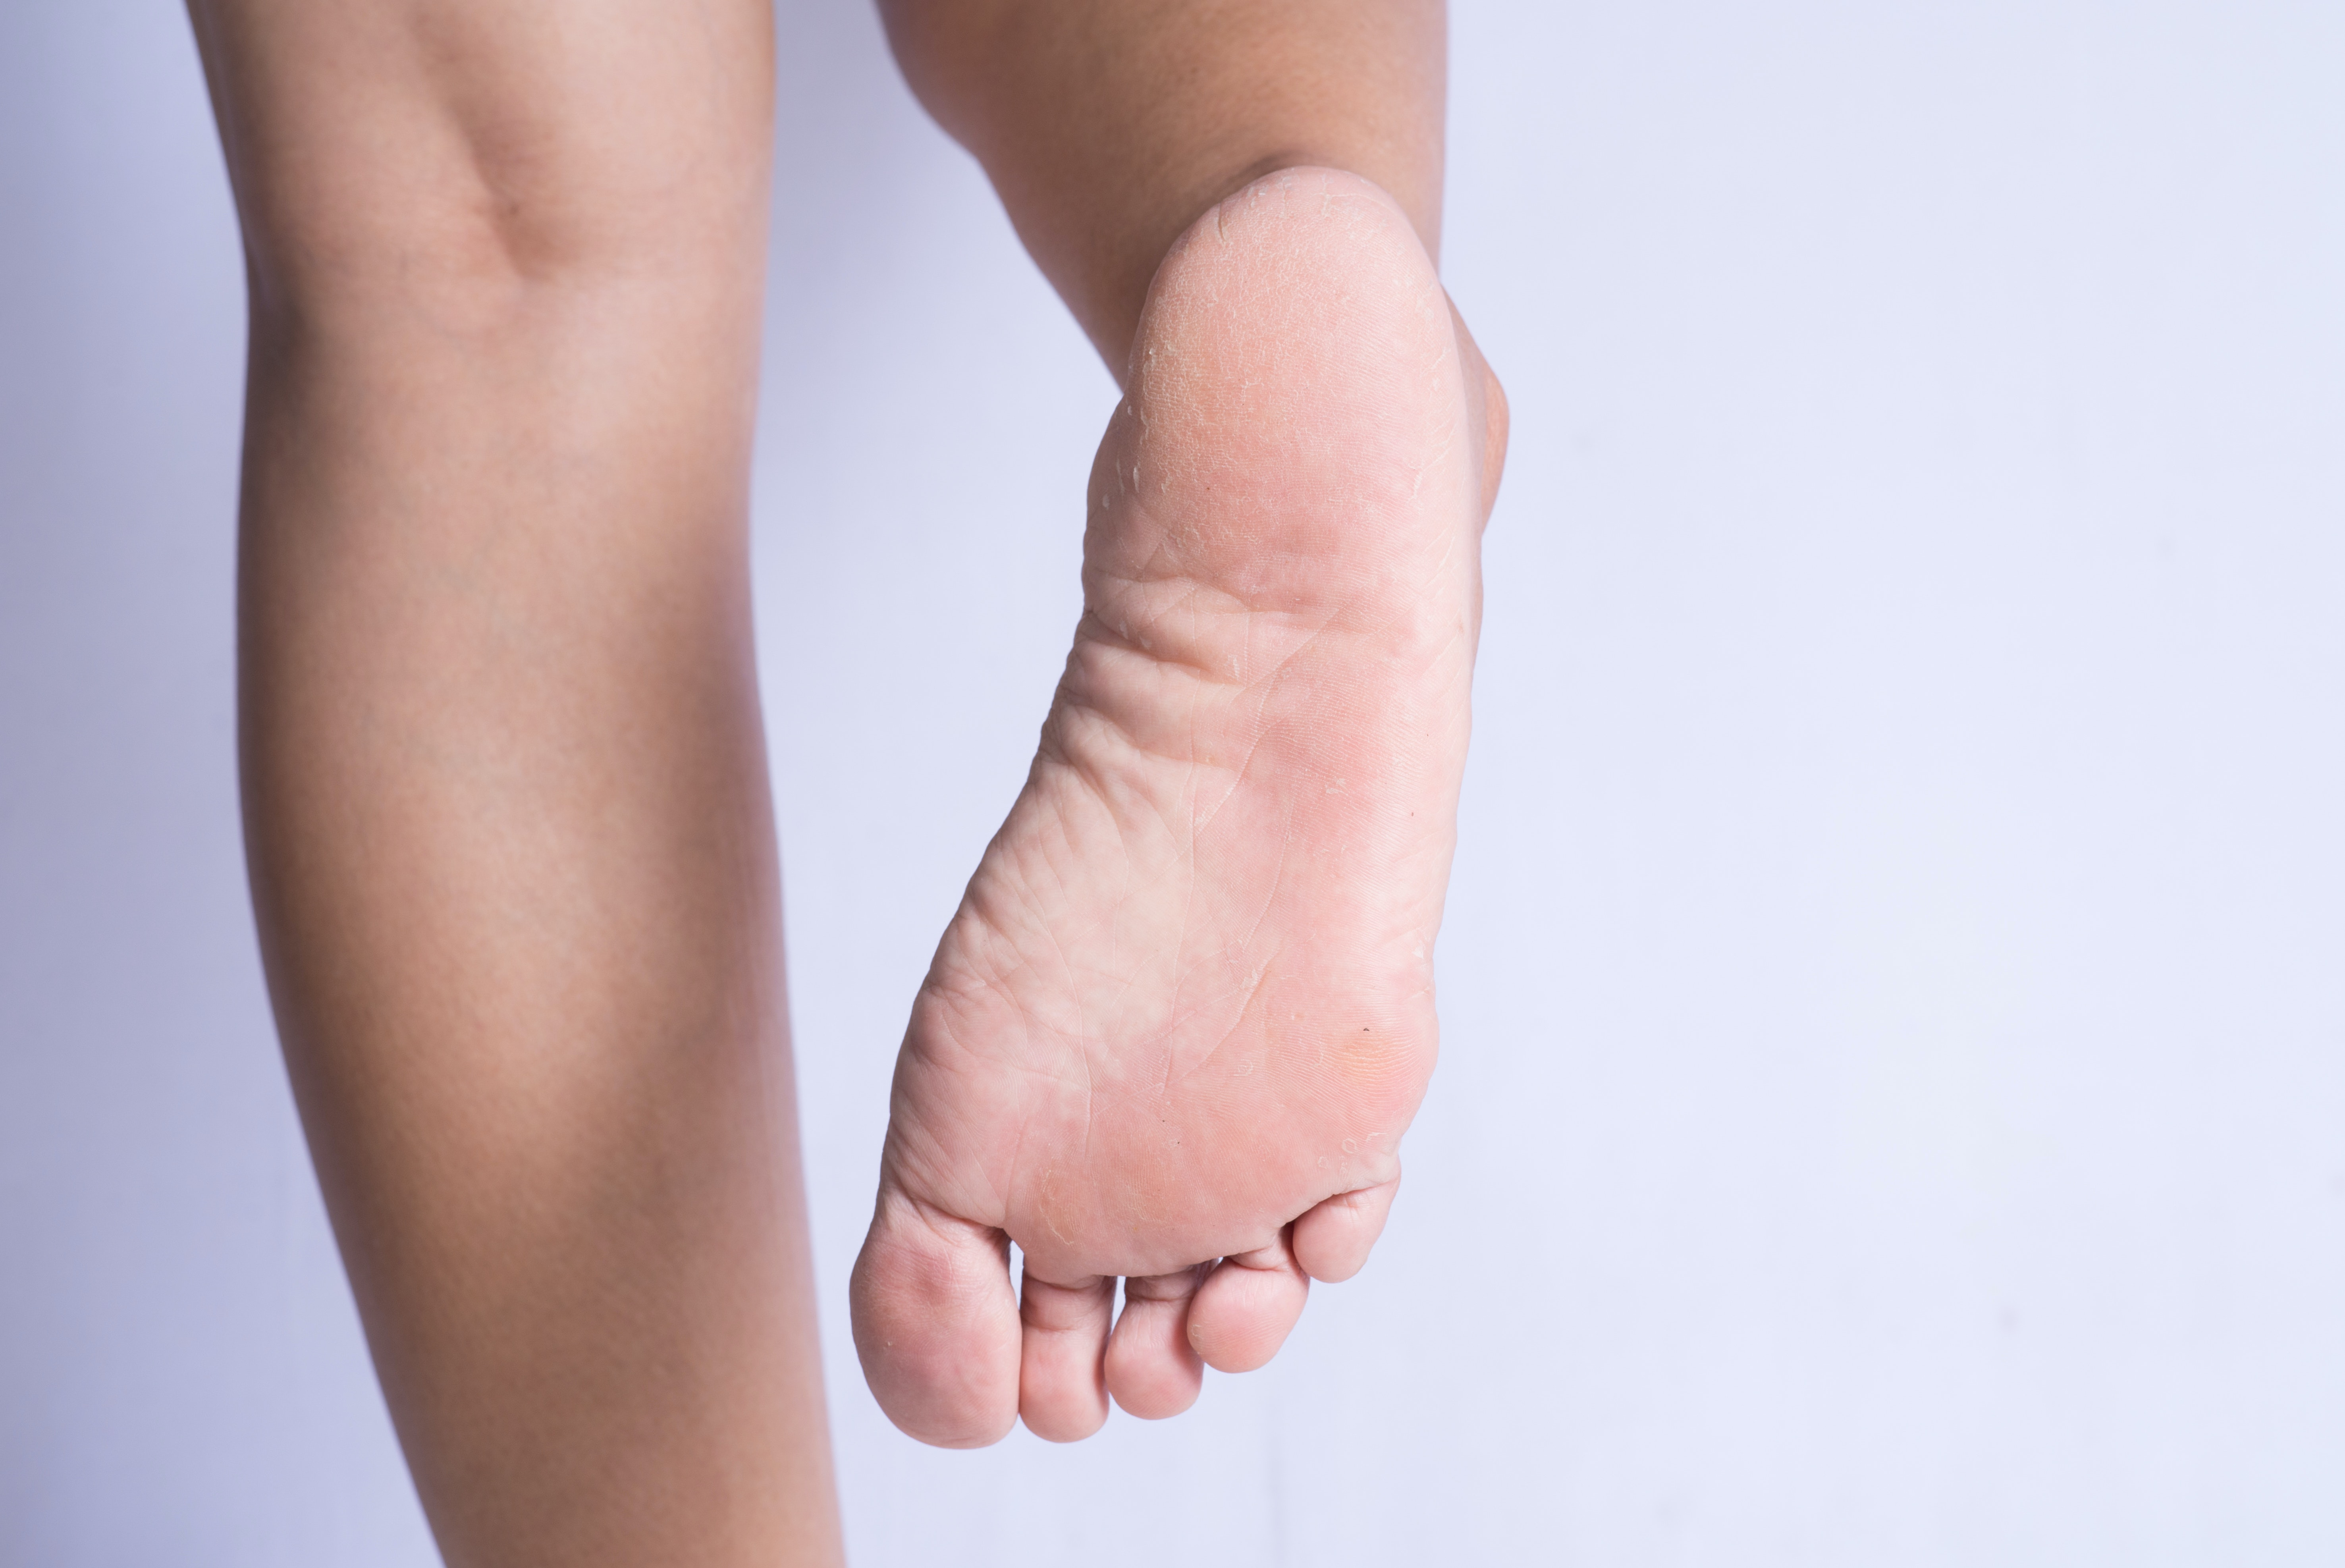 An image depicting a person suffering from foot peeling symptoms